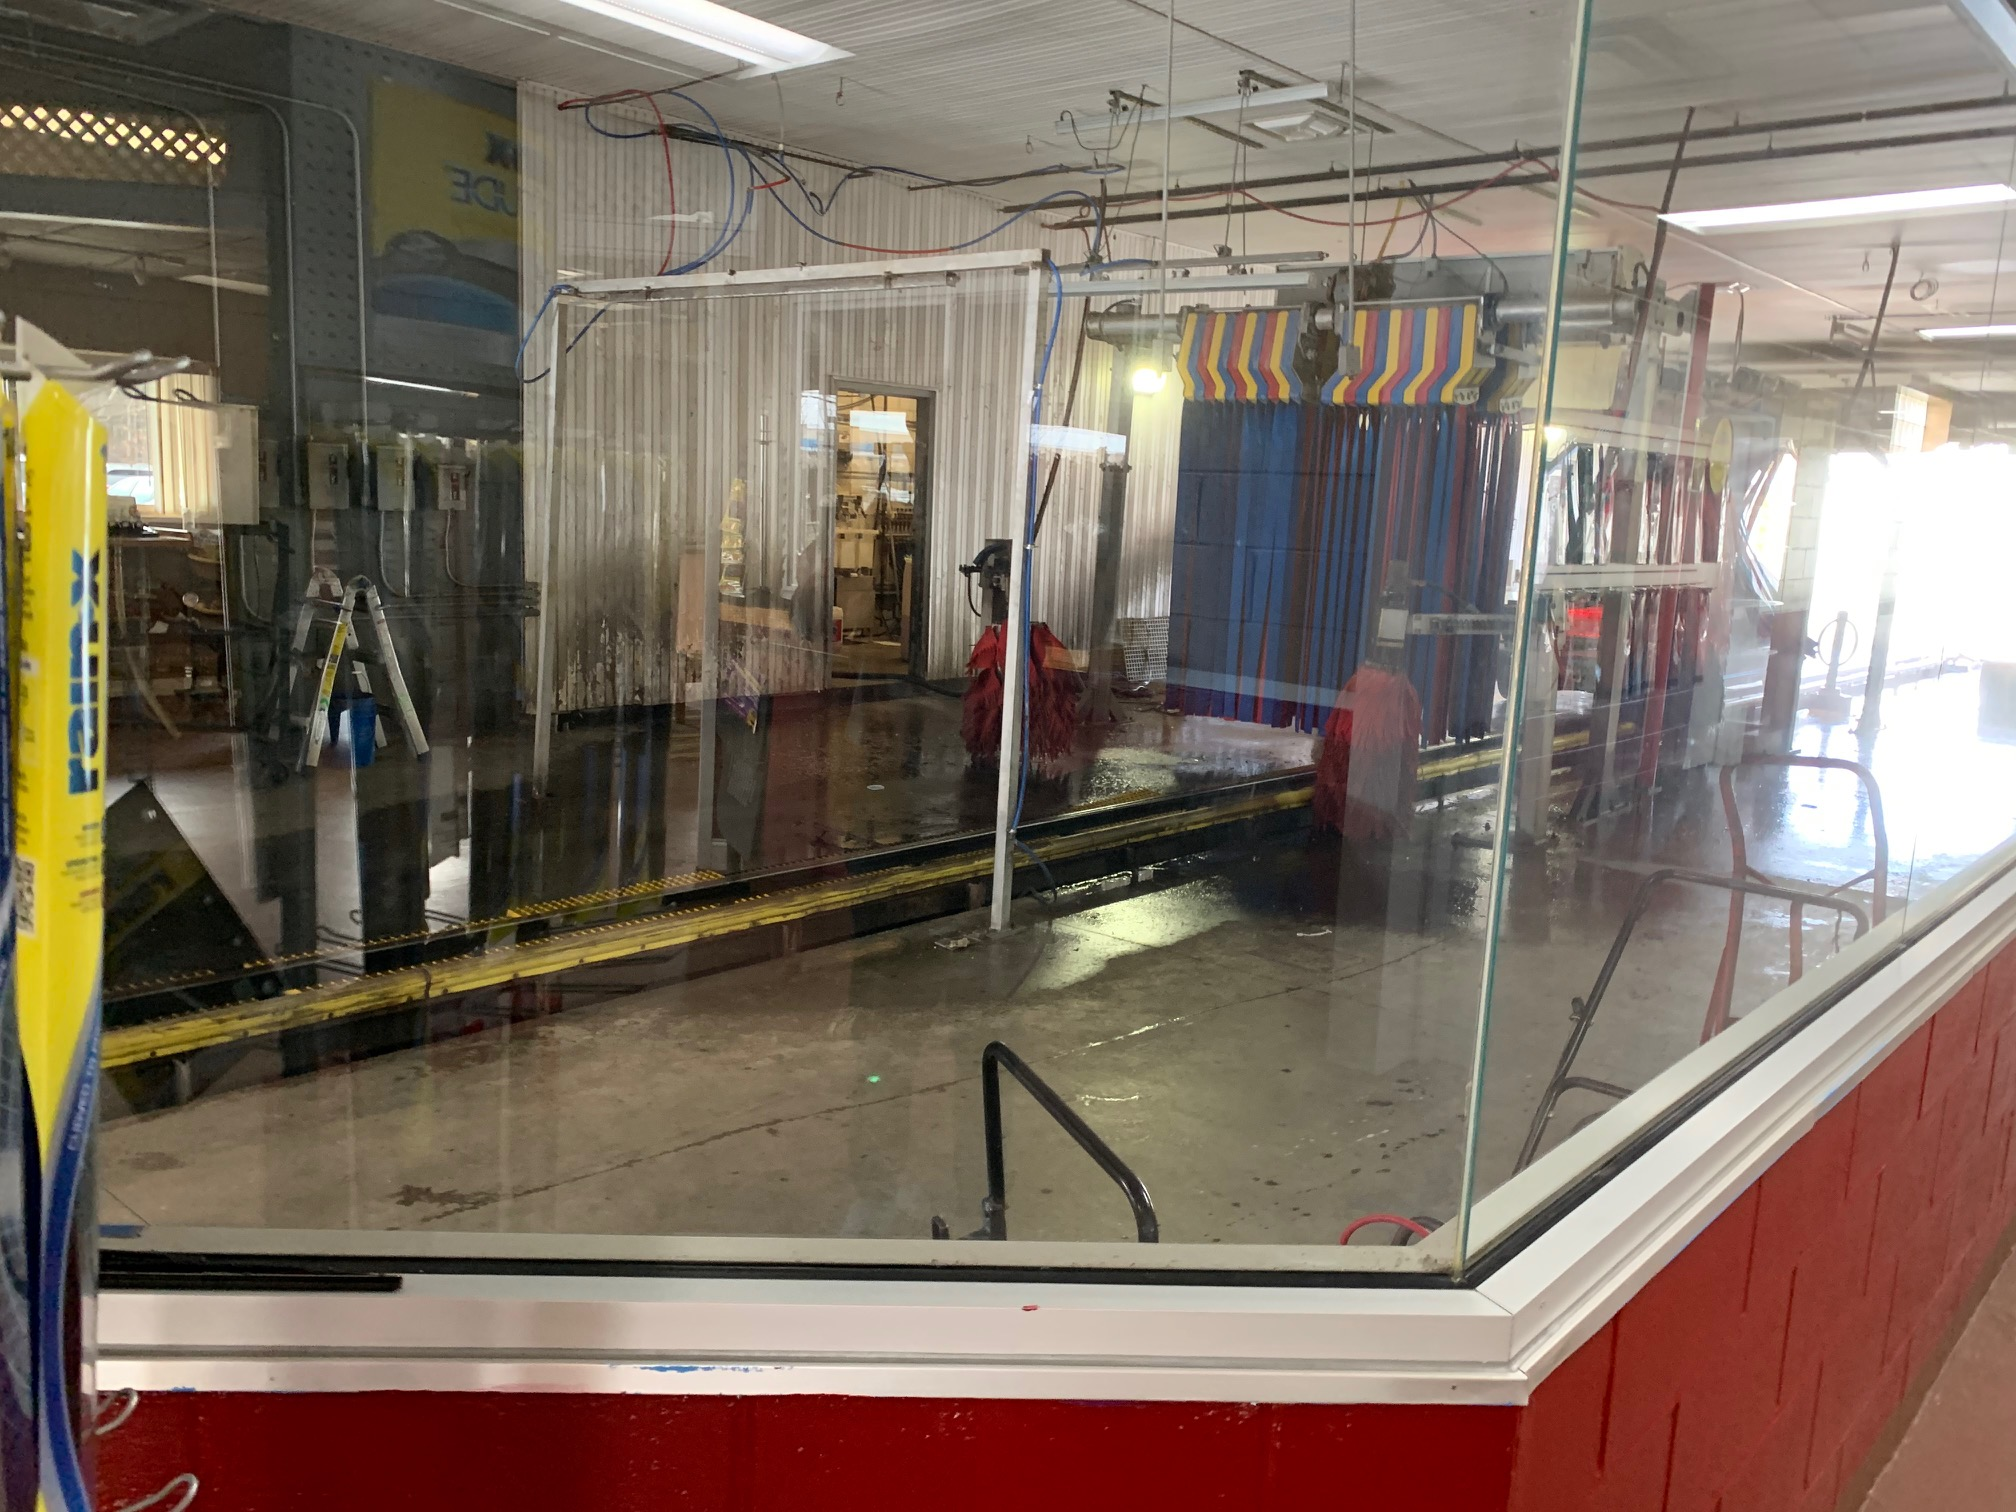 Car Wash & Detailing Business for sale in CT